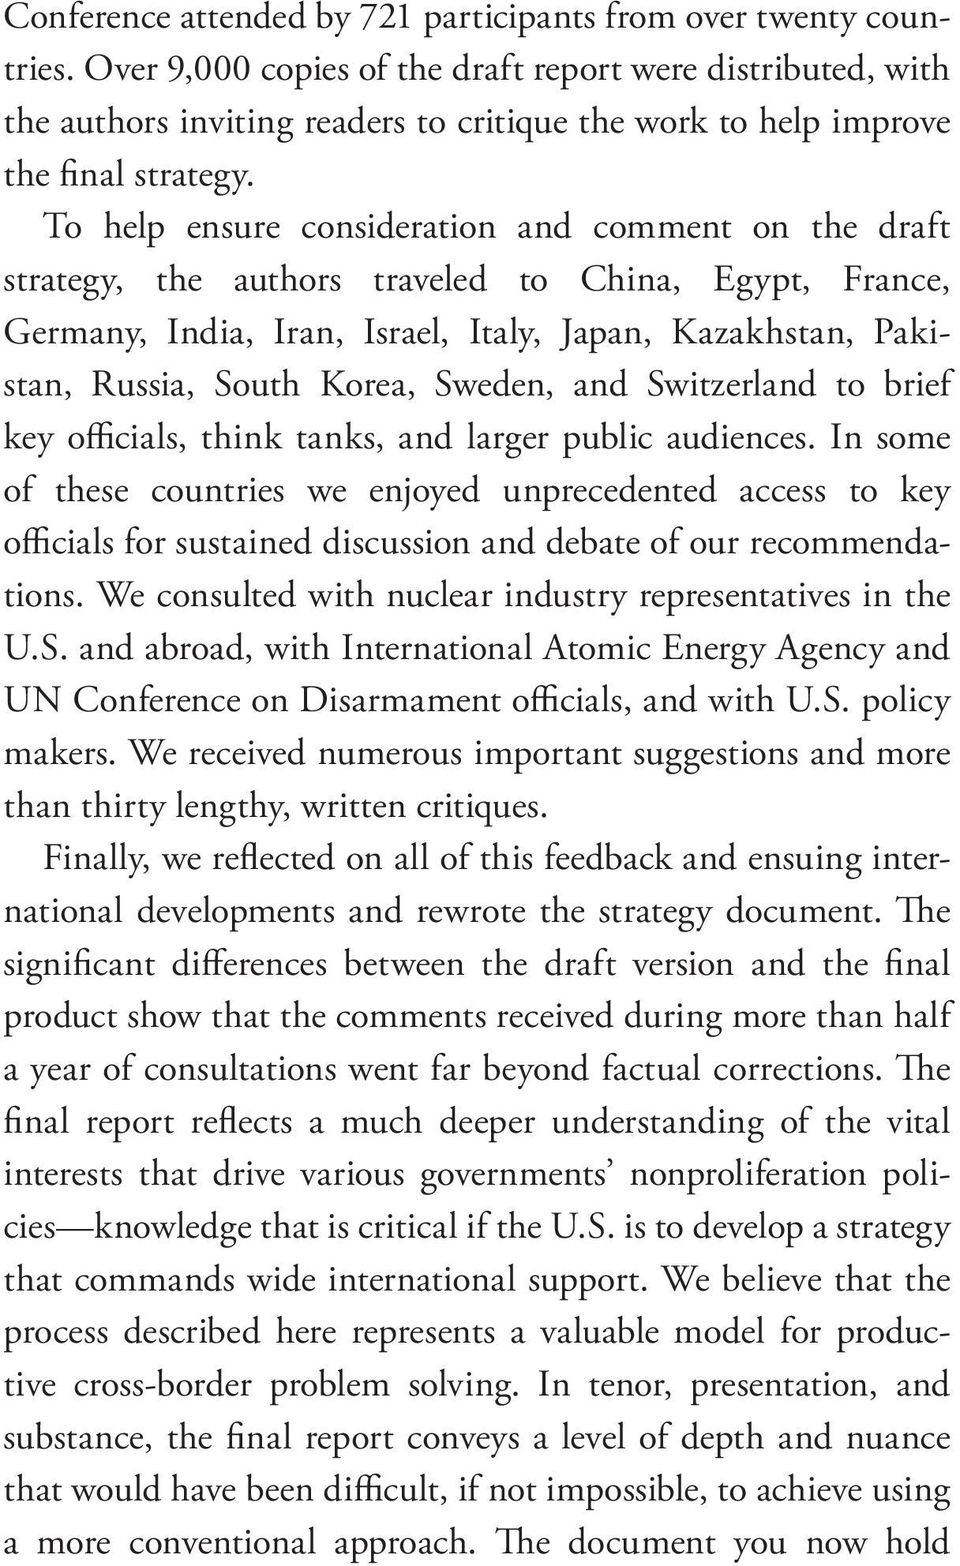 To help ensure consideration and comment on the draft strategy, the authors traveled to China, Egypt, France, Germany, India, Iran, Israel, Italy, Japan, Kazakhstan, Pakistan, Russia, South Korea,